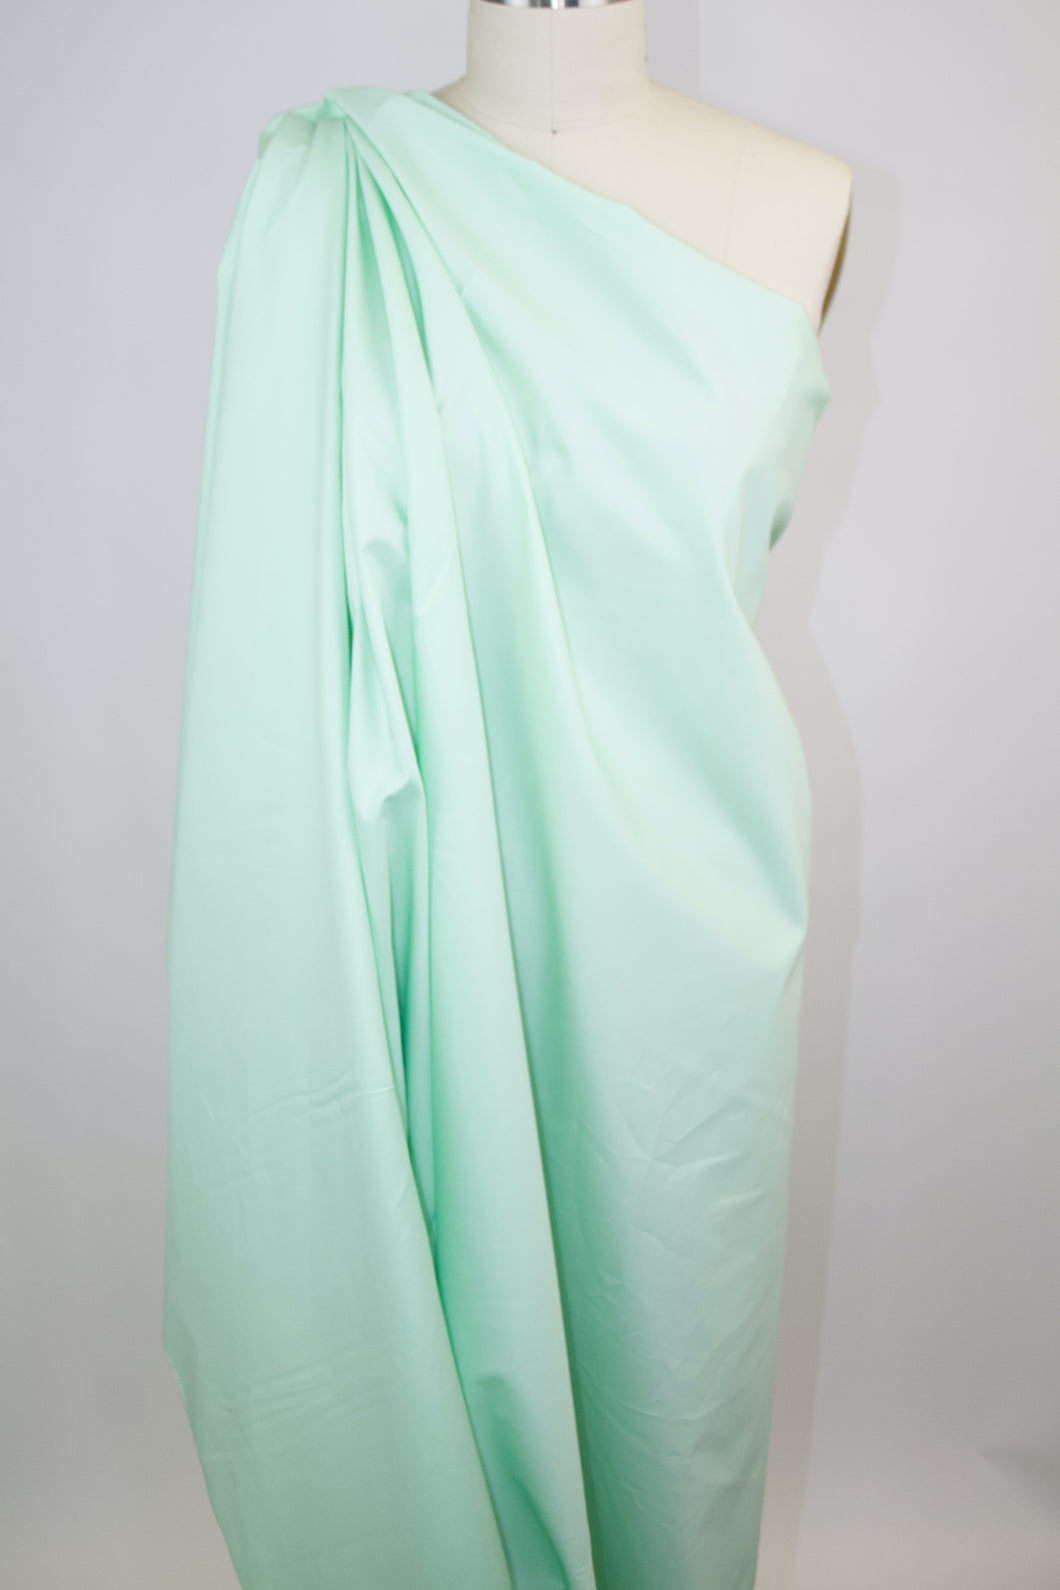 NY Designer Mid-Weight Cotton Twill - Mint